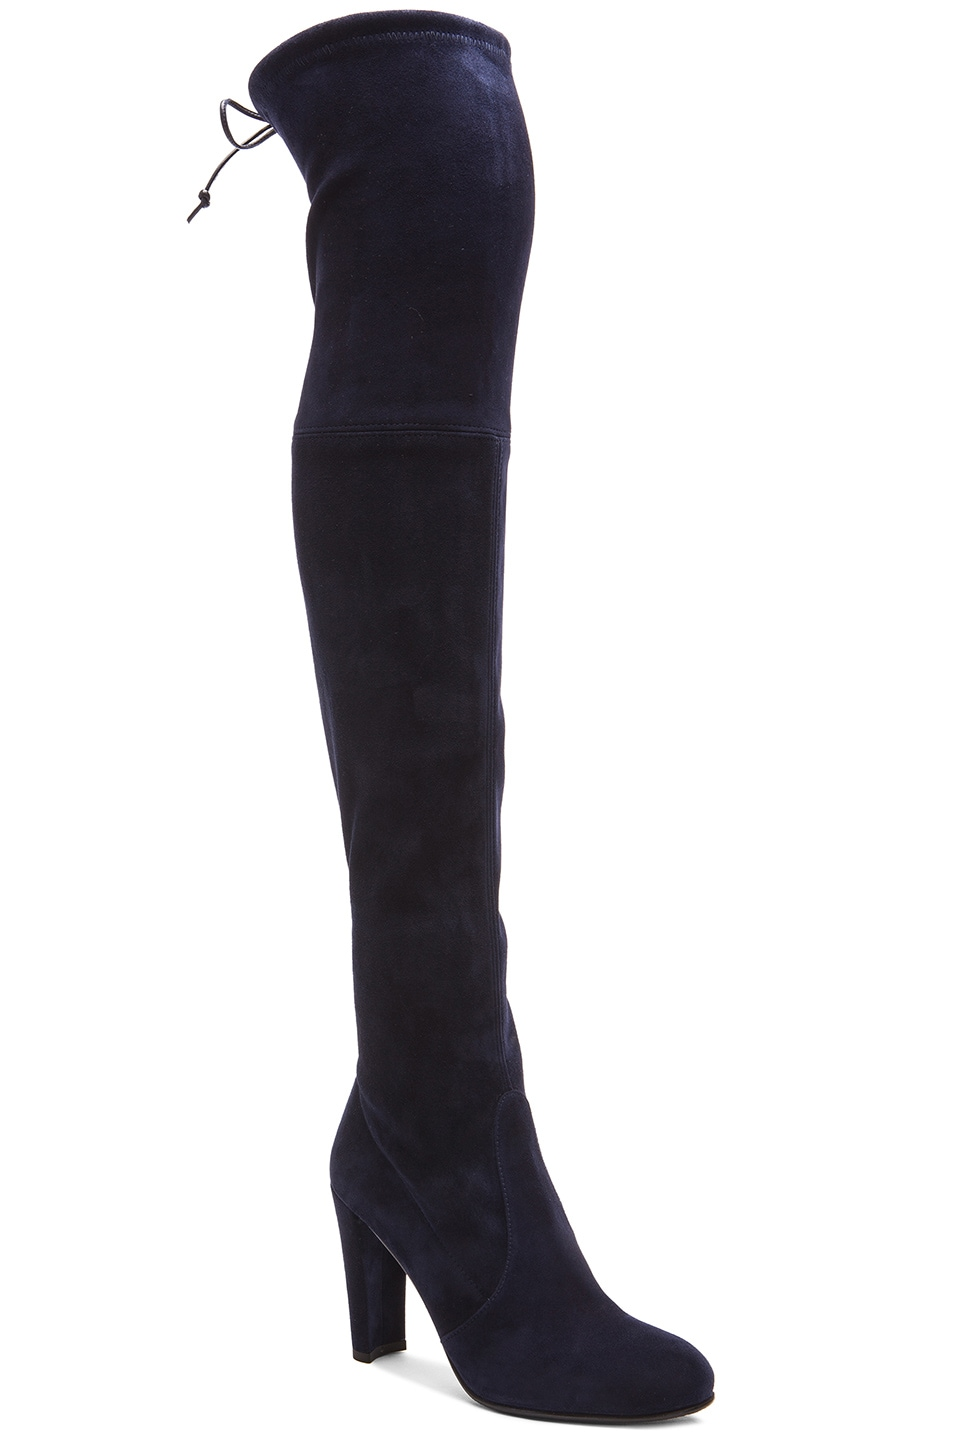 Image 2 of Stuart Weitzman Highland Suede Boots in Nice Blue Suede